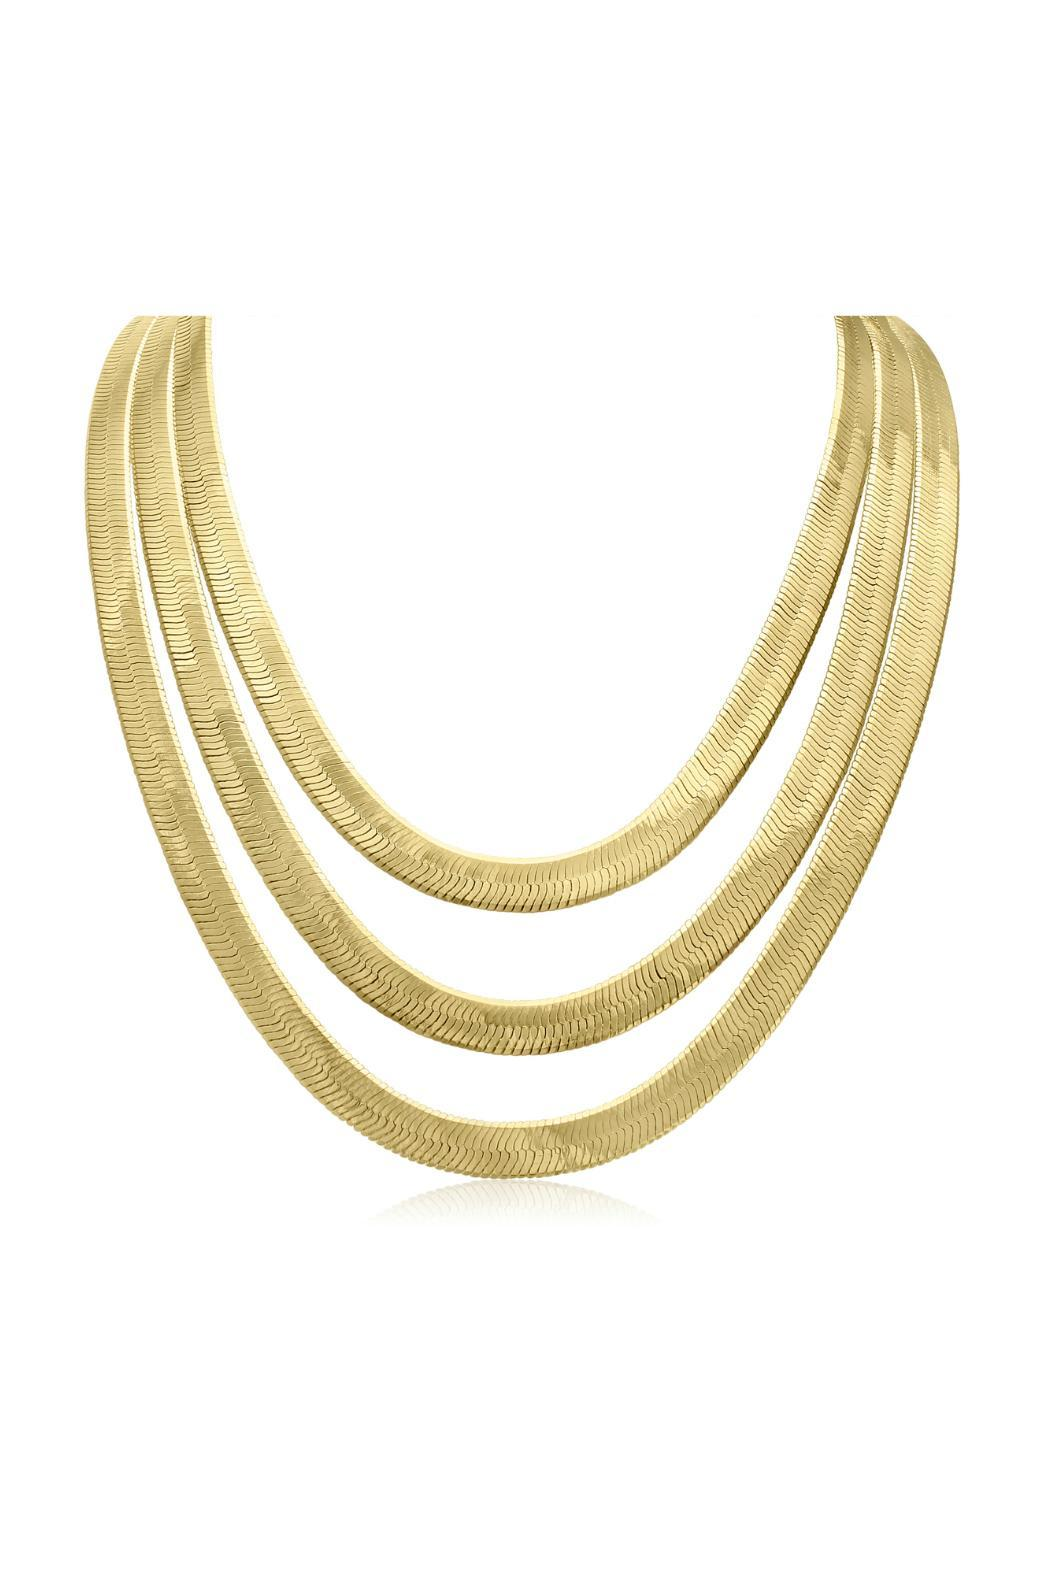 Passiana Gold Herringbone Necklace - Main Image